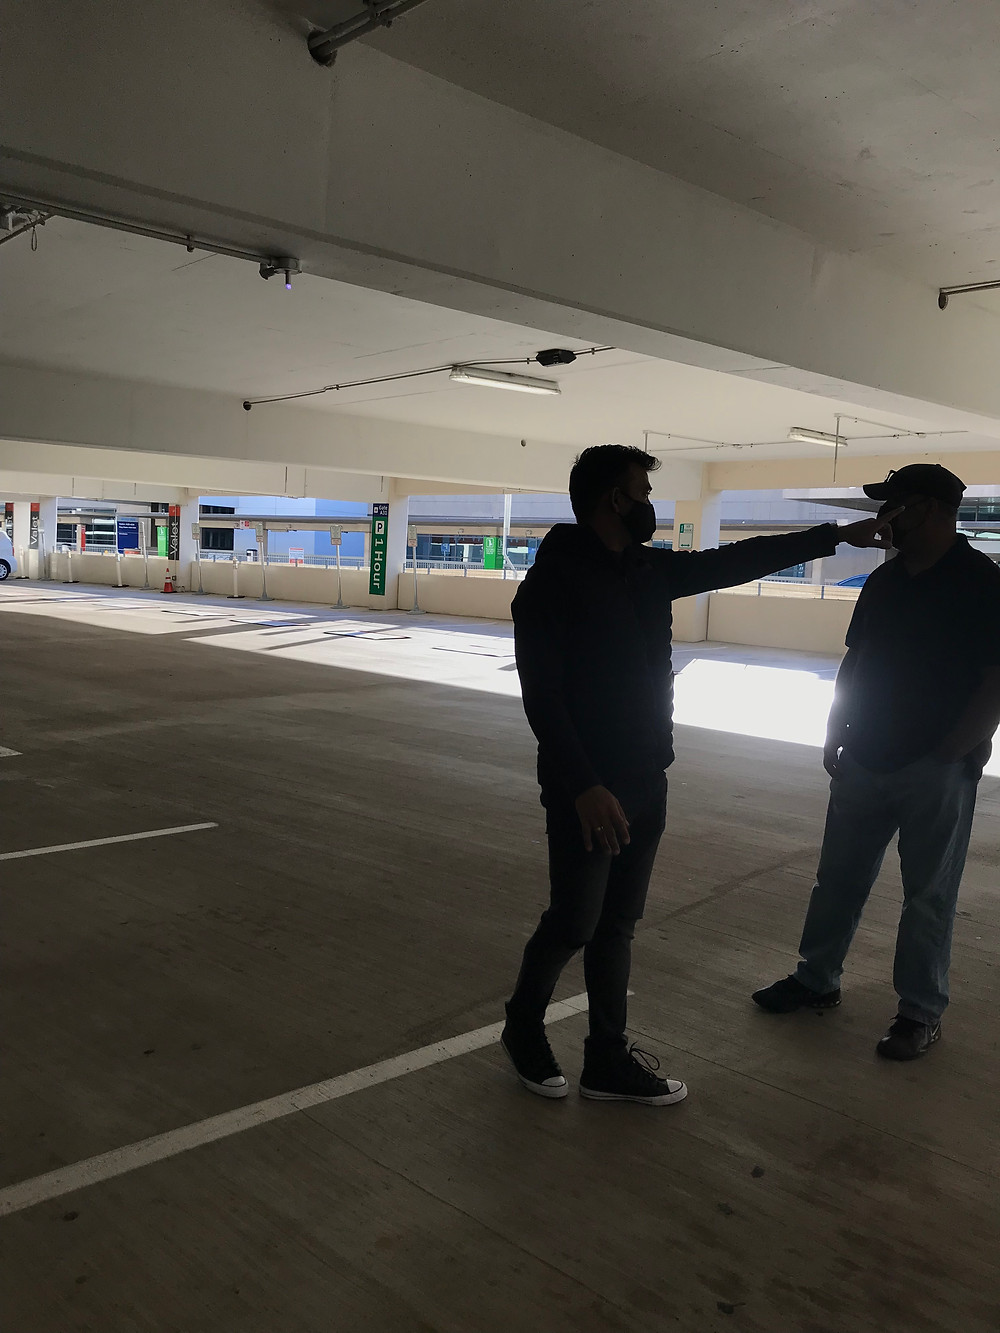 Senior Art Director Satish Dusa discusses a marketing campaign photo needed for Prepaid Airport Parking at DFW.